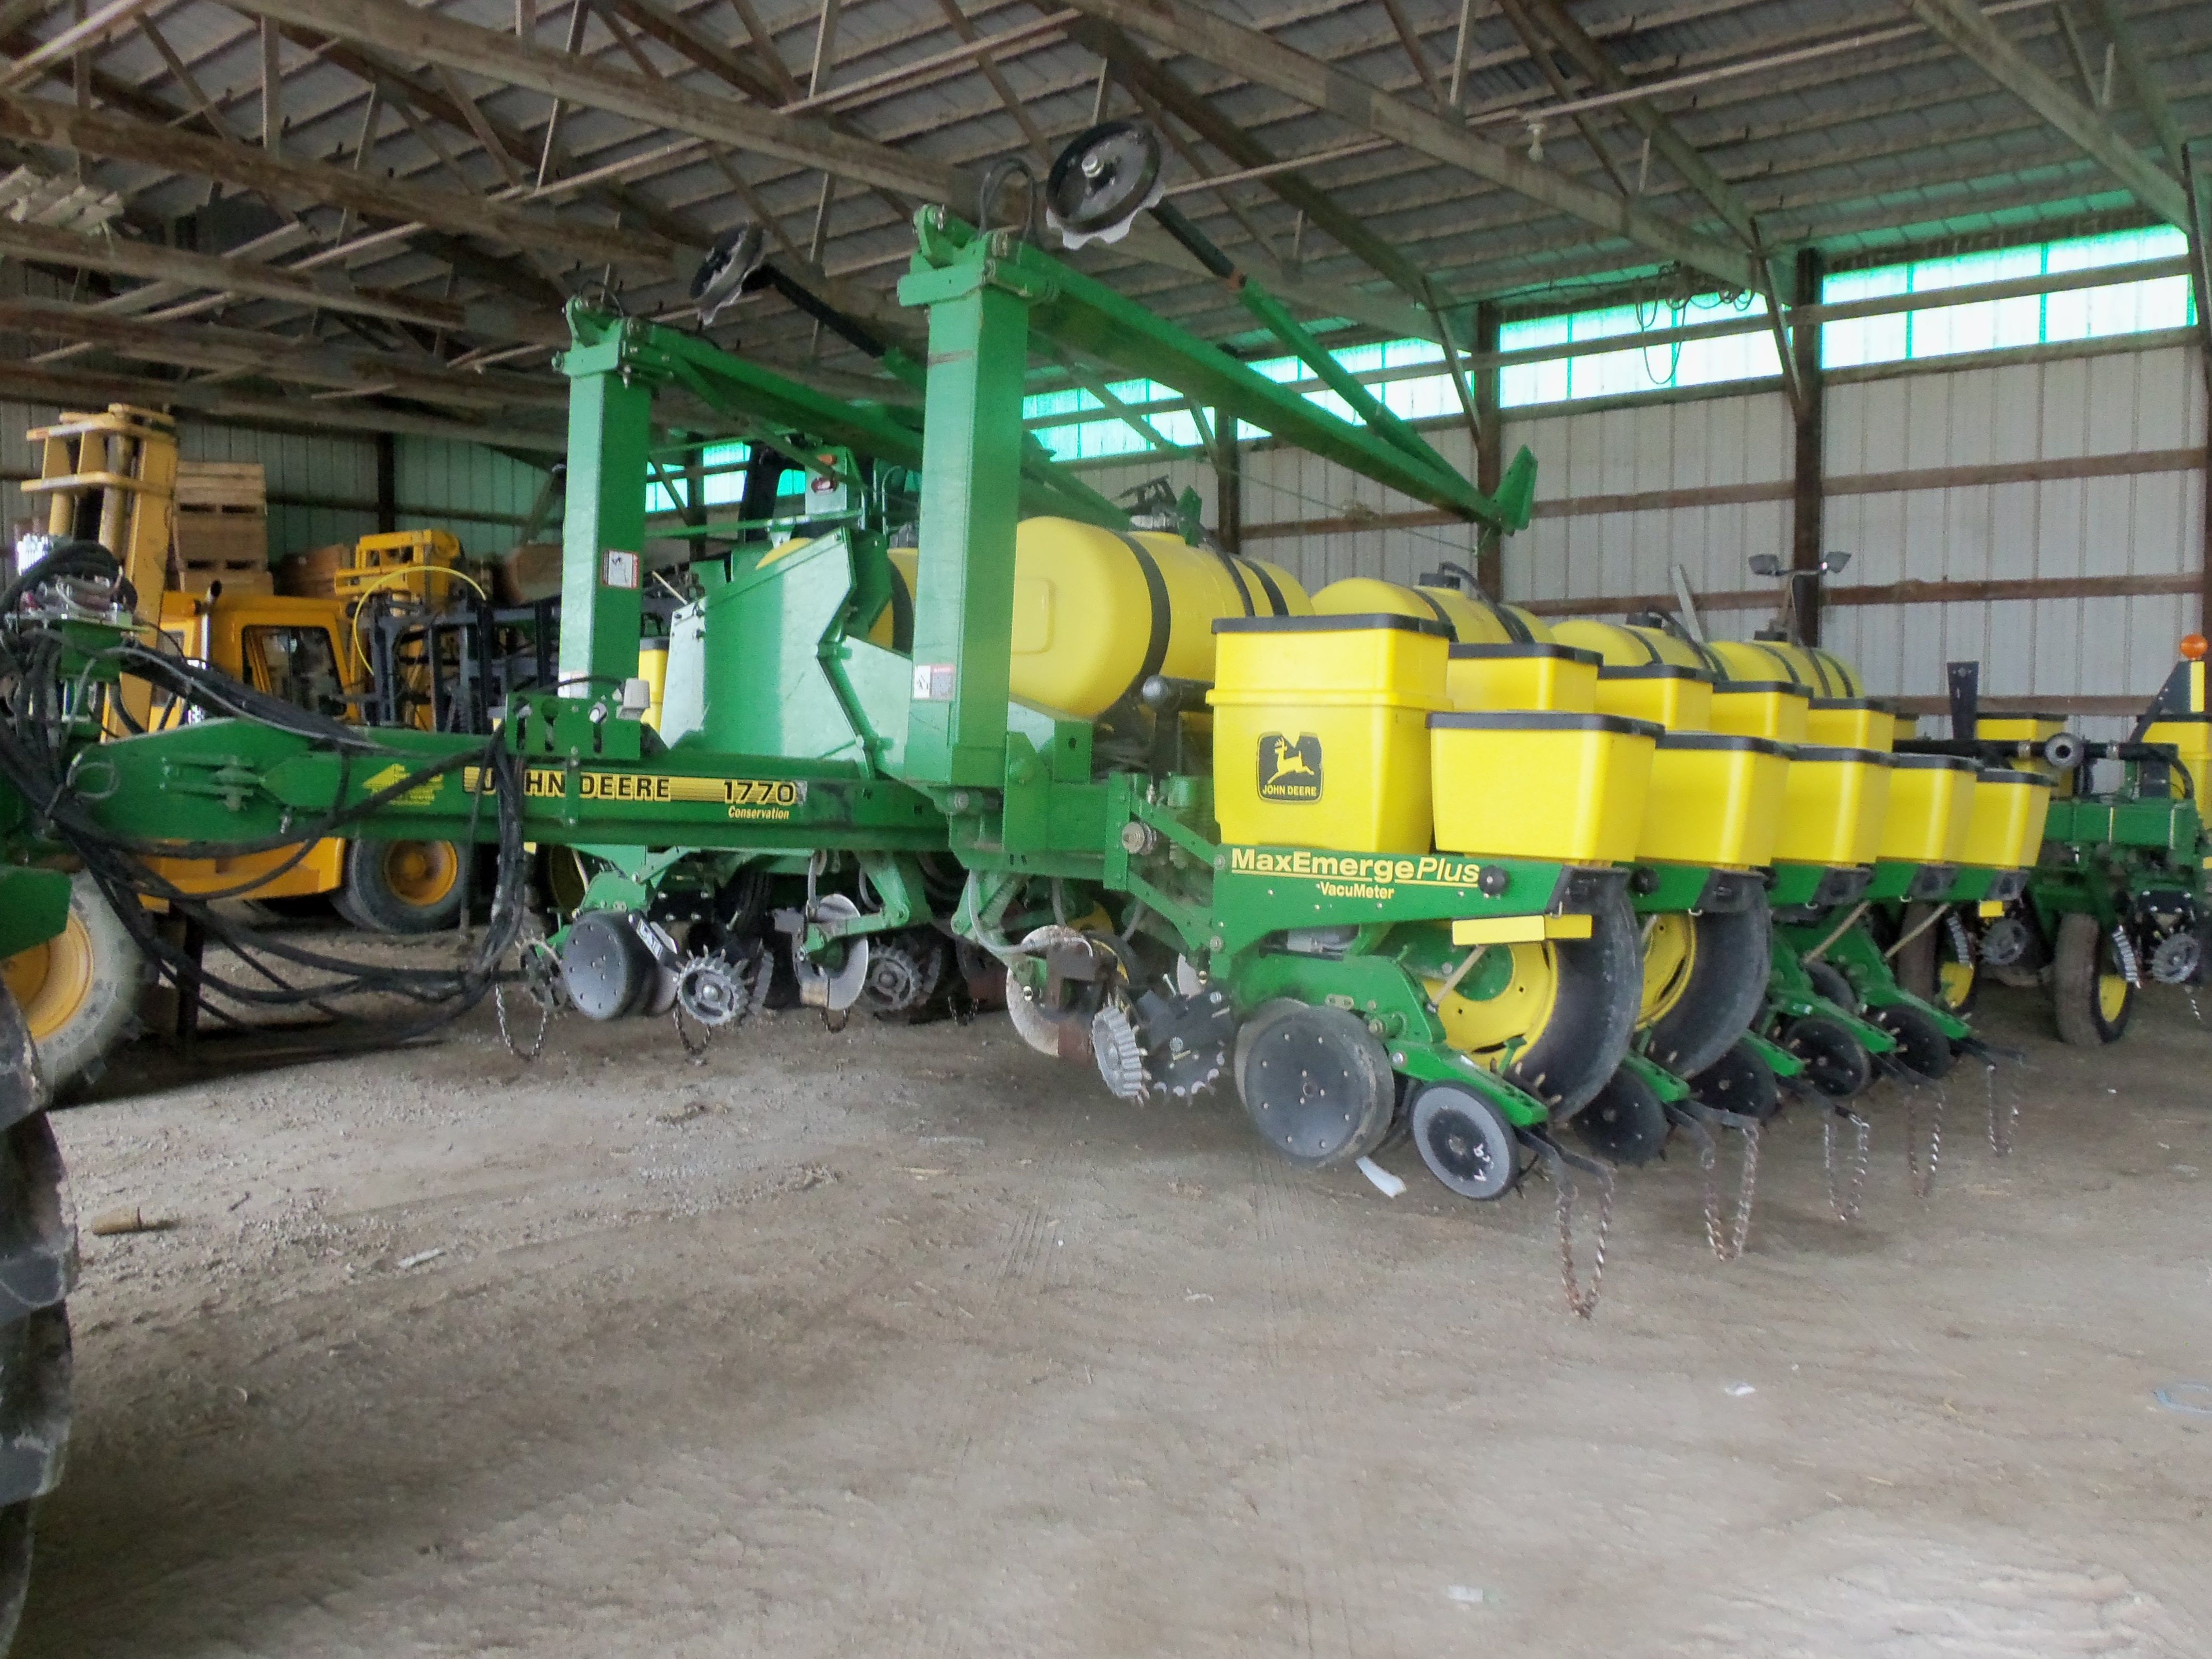 16 Row John Deere 1770 Max Emerge Plus Corn Planter John Deere